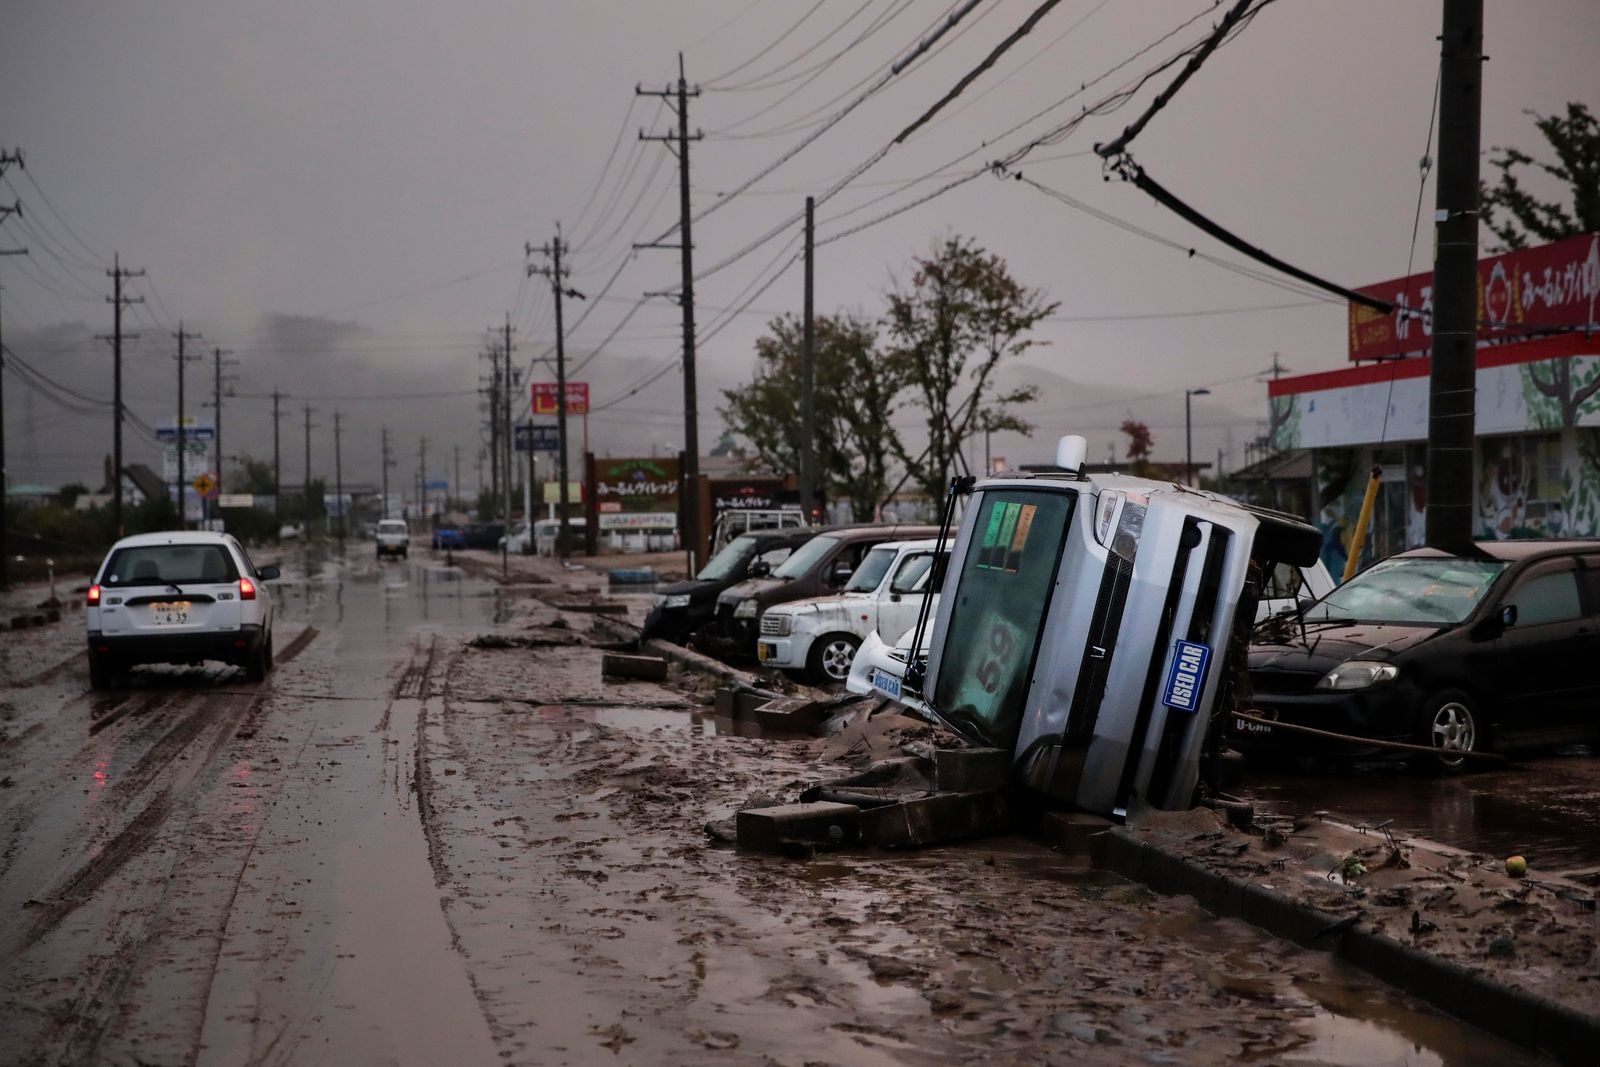 Typhoon-damaged cars sit on the street covered with mud Monday, Oct. 14, 2019, in Hoyasu, Japan. . (AP Photo/Jae C. Hong)